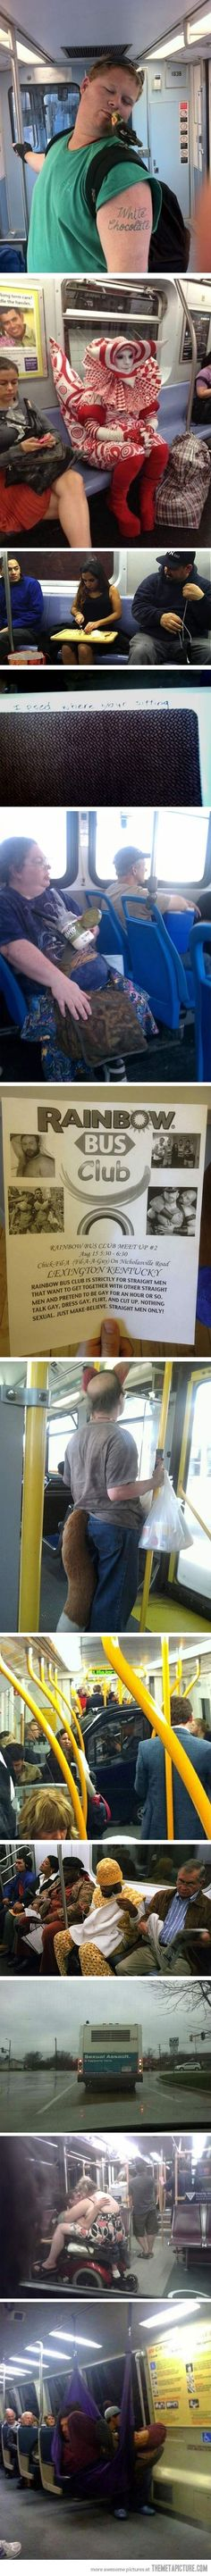 Reasons to avoid public transportation…I feel like I've seen all of these on the bus in Athens.